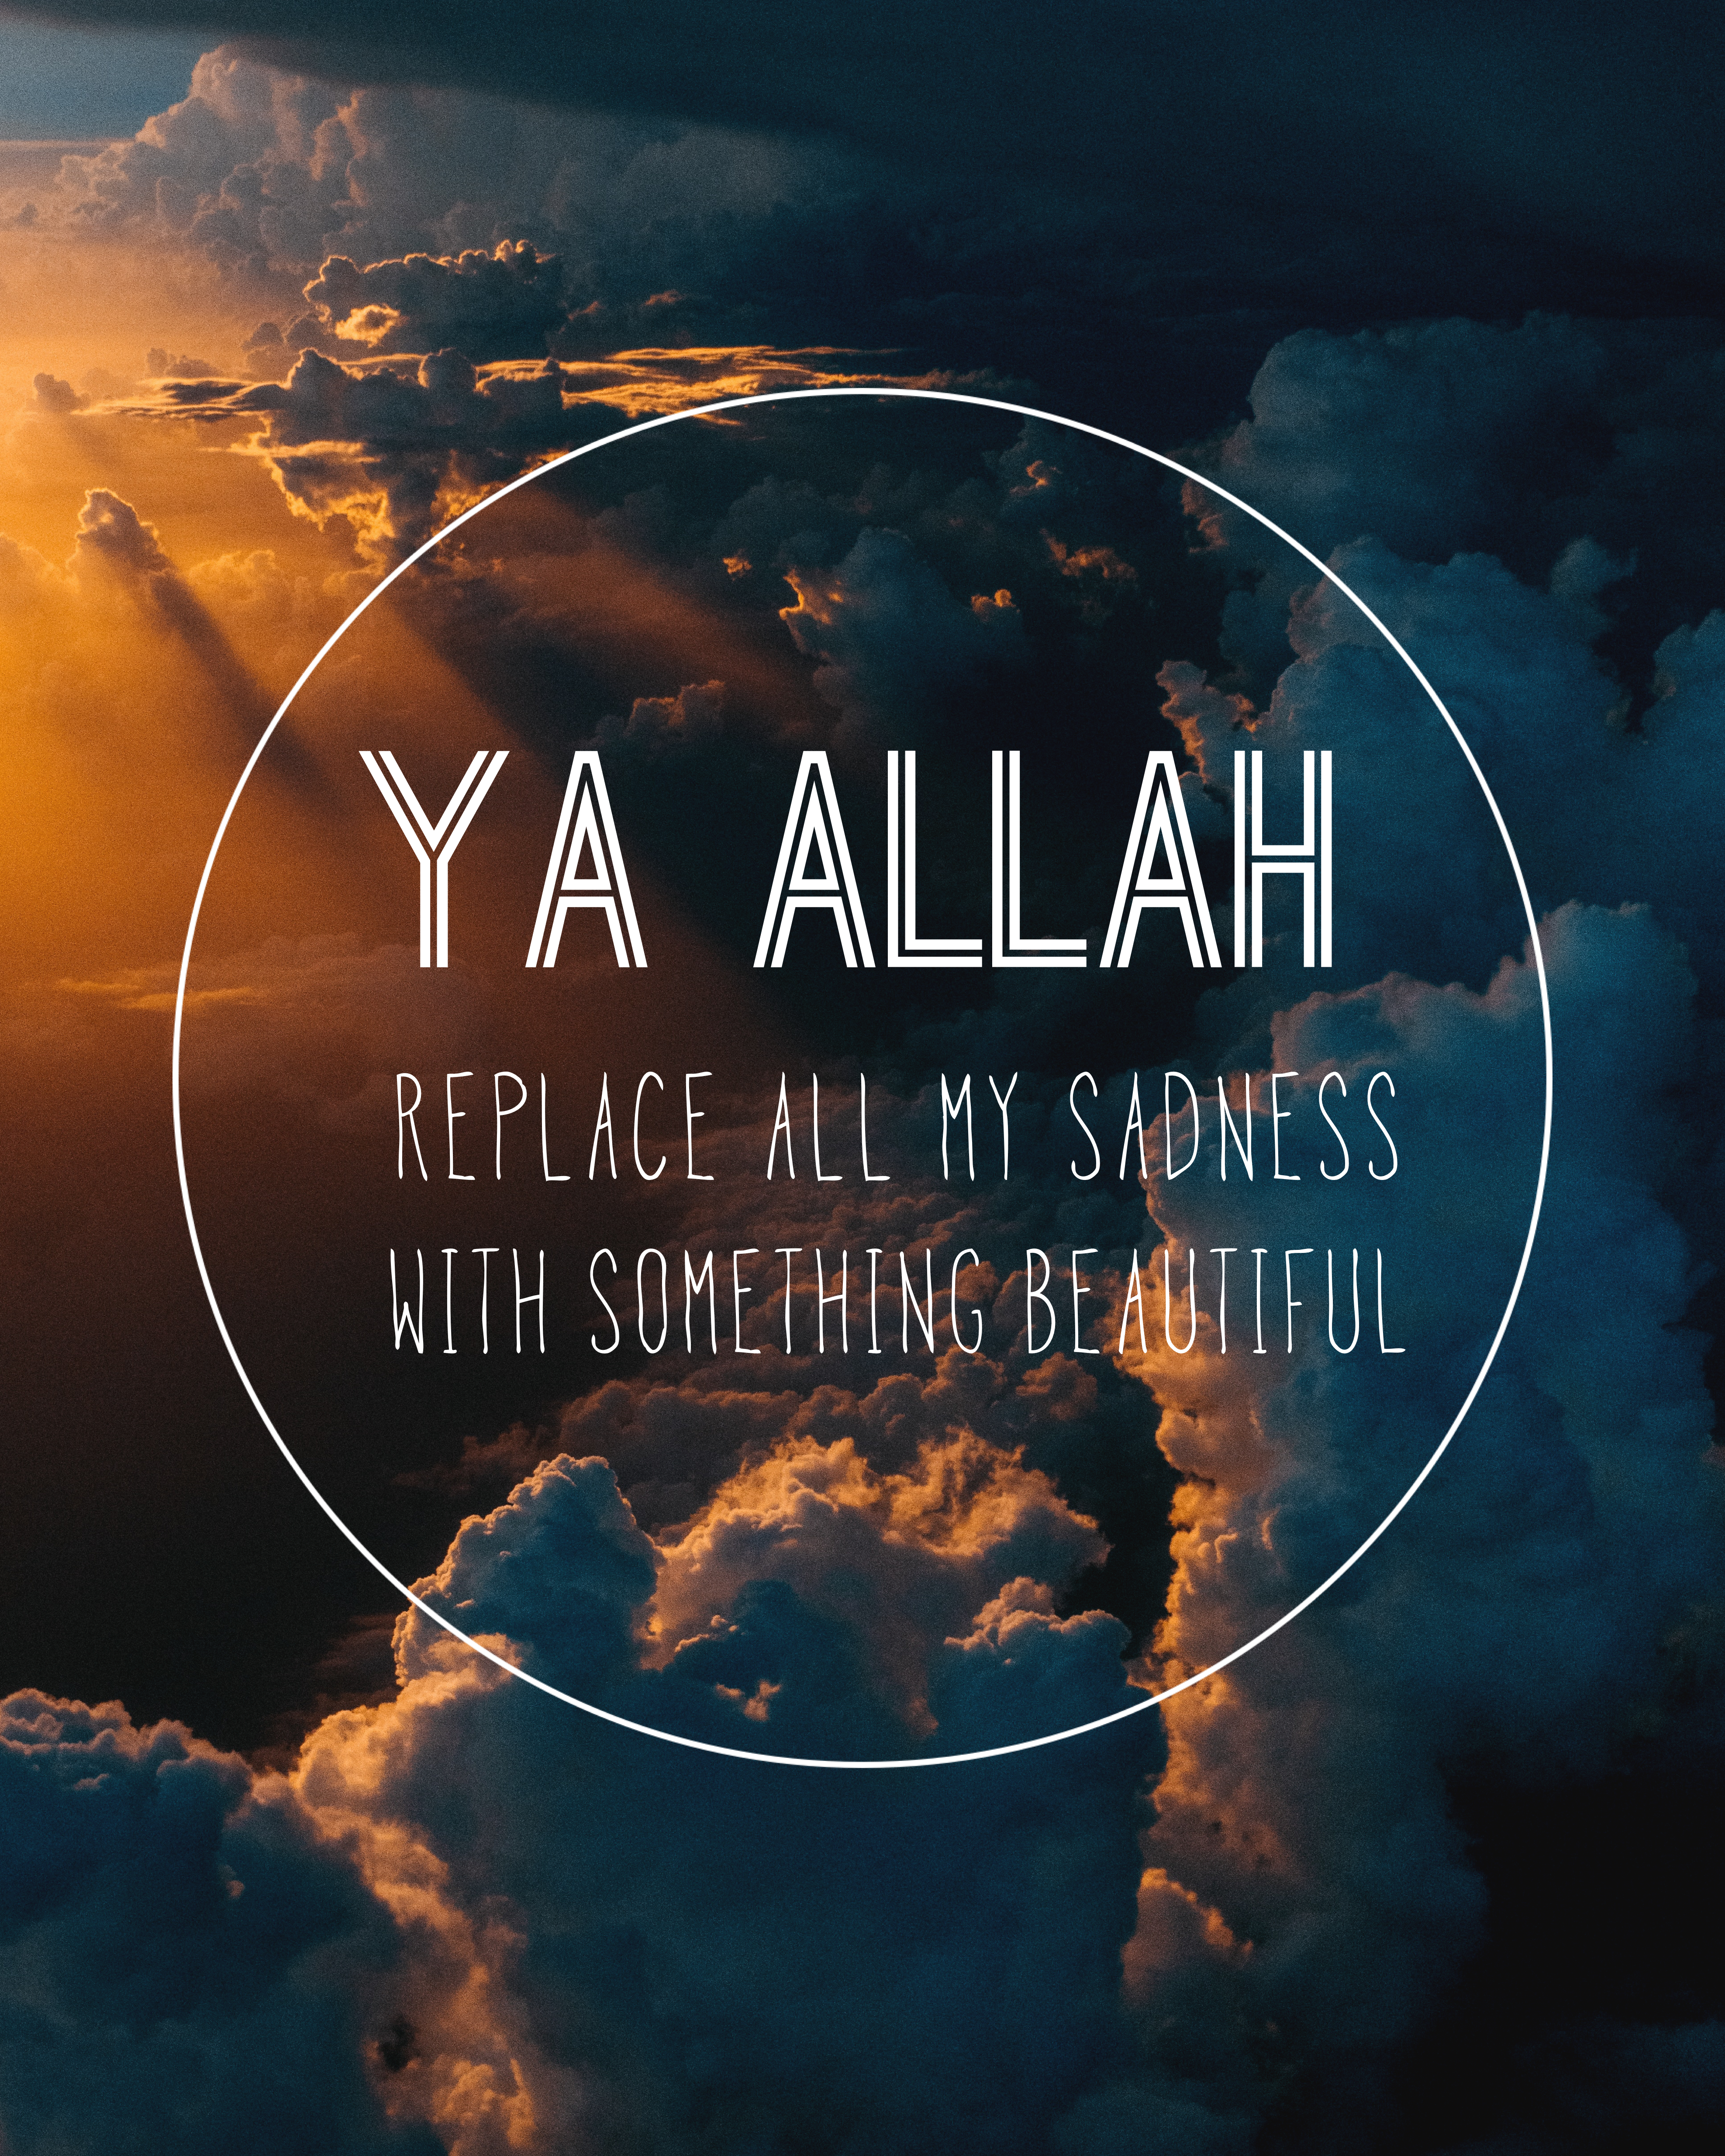 islamic quotes islamicquotes islam dua allah prayer quran